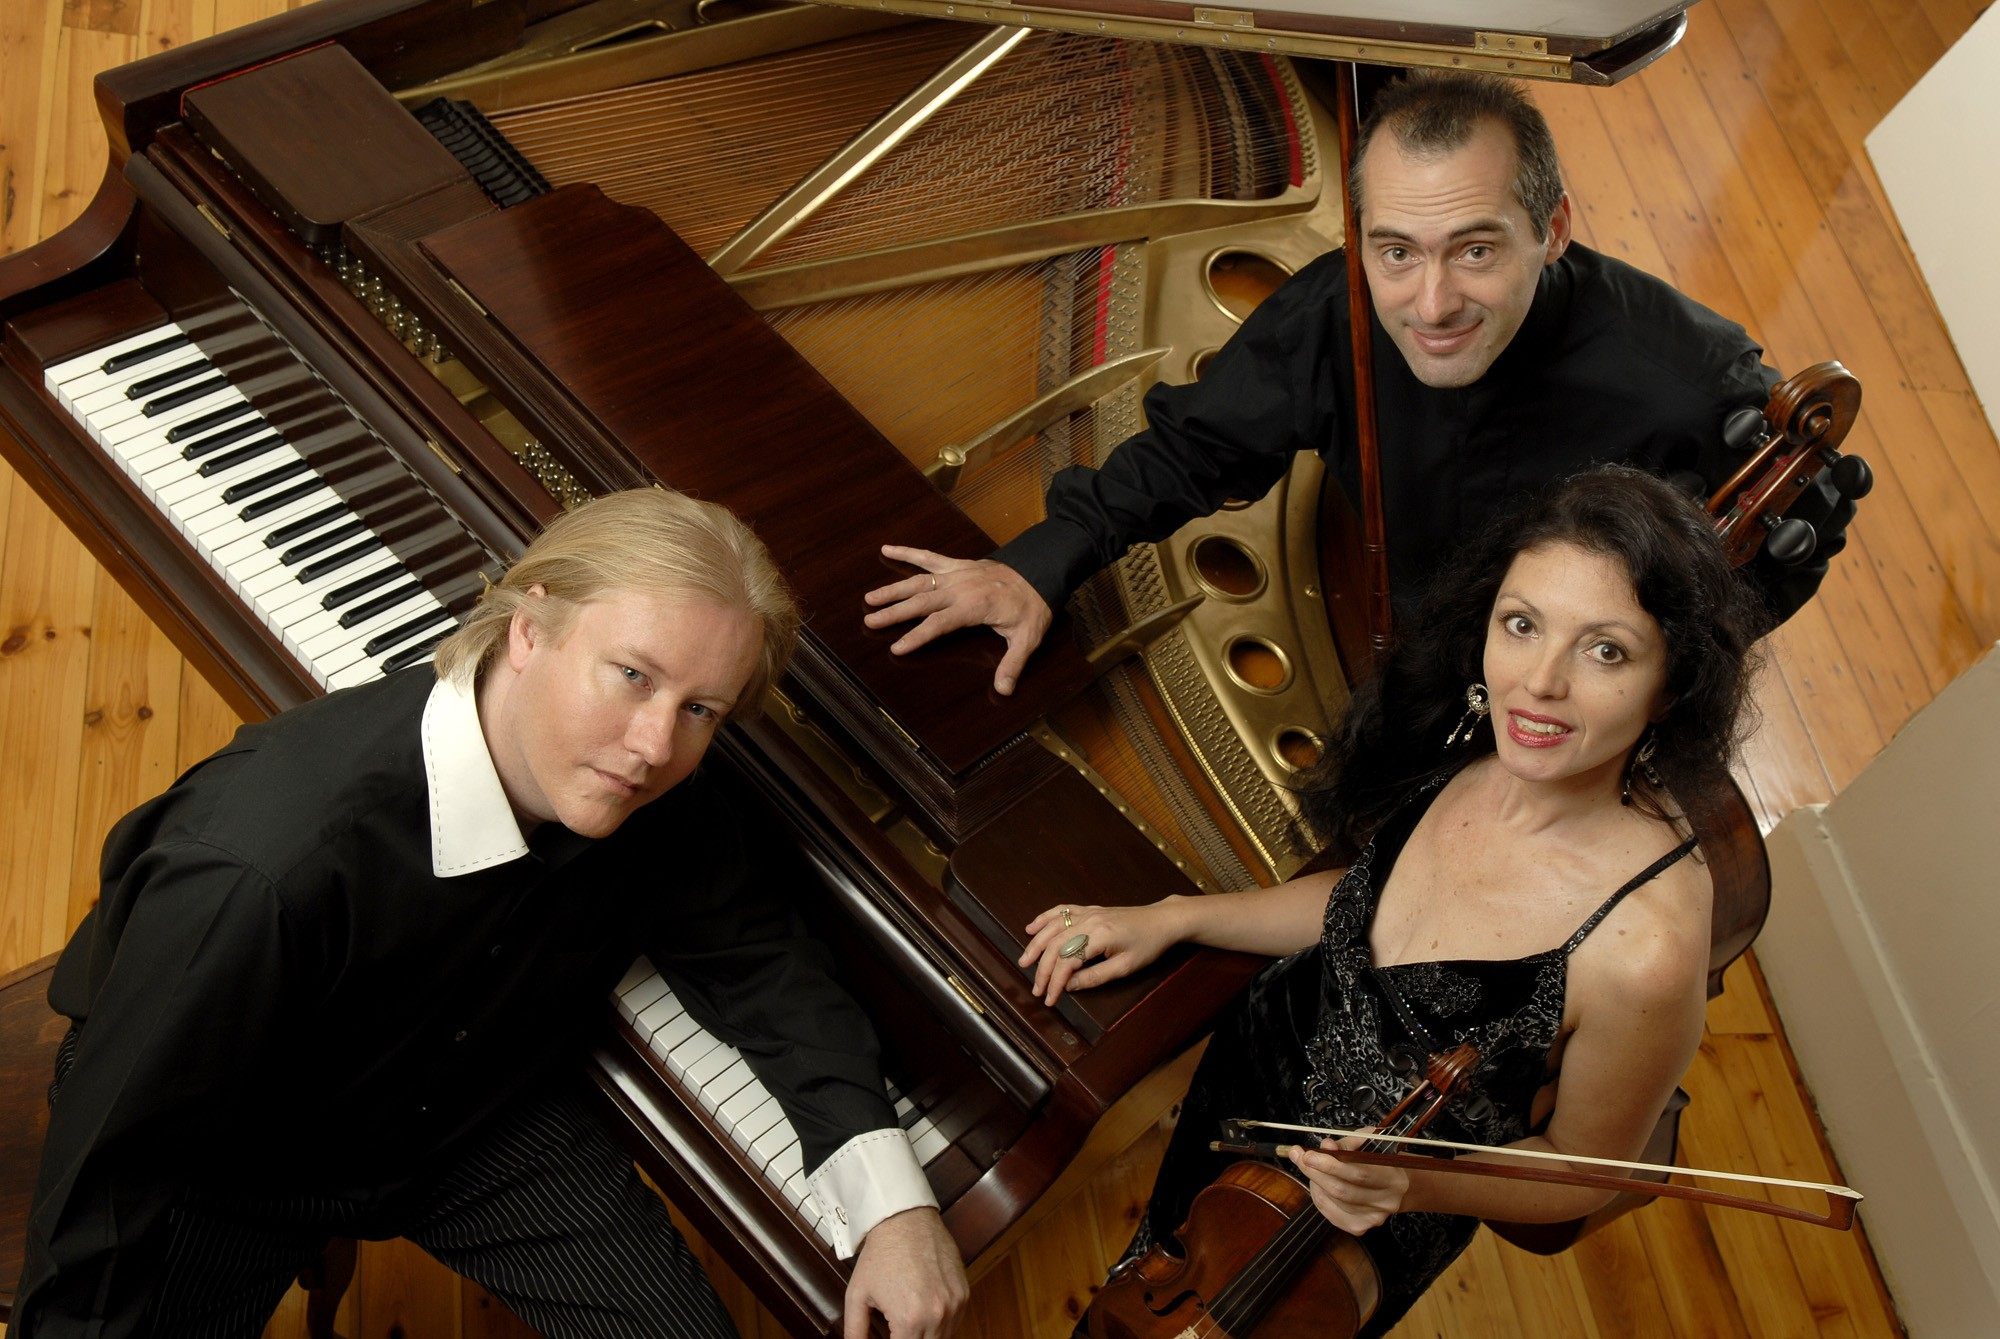 PIC : The Kerimov Trio : Elena Kerimova (violin) Boris Kerimov (cello) and Christopher Duigan (piano) play in the Trout Quintet by Austrian composer Franz Schubert to be presented at Ashton International College on Wednesday 9 October. Pic by Val Adamson